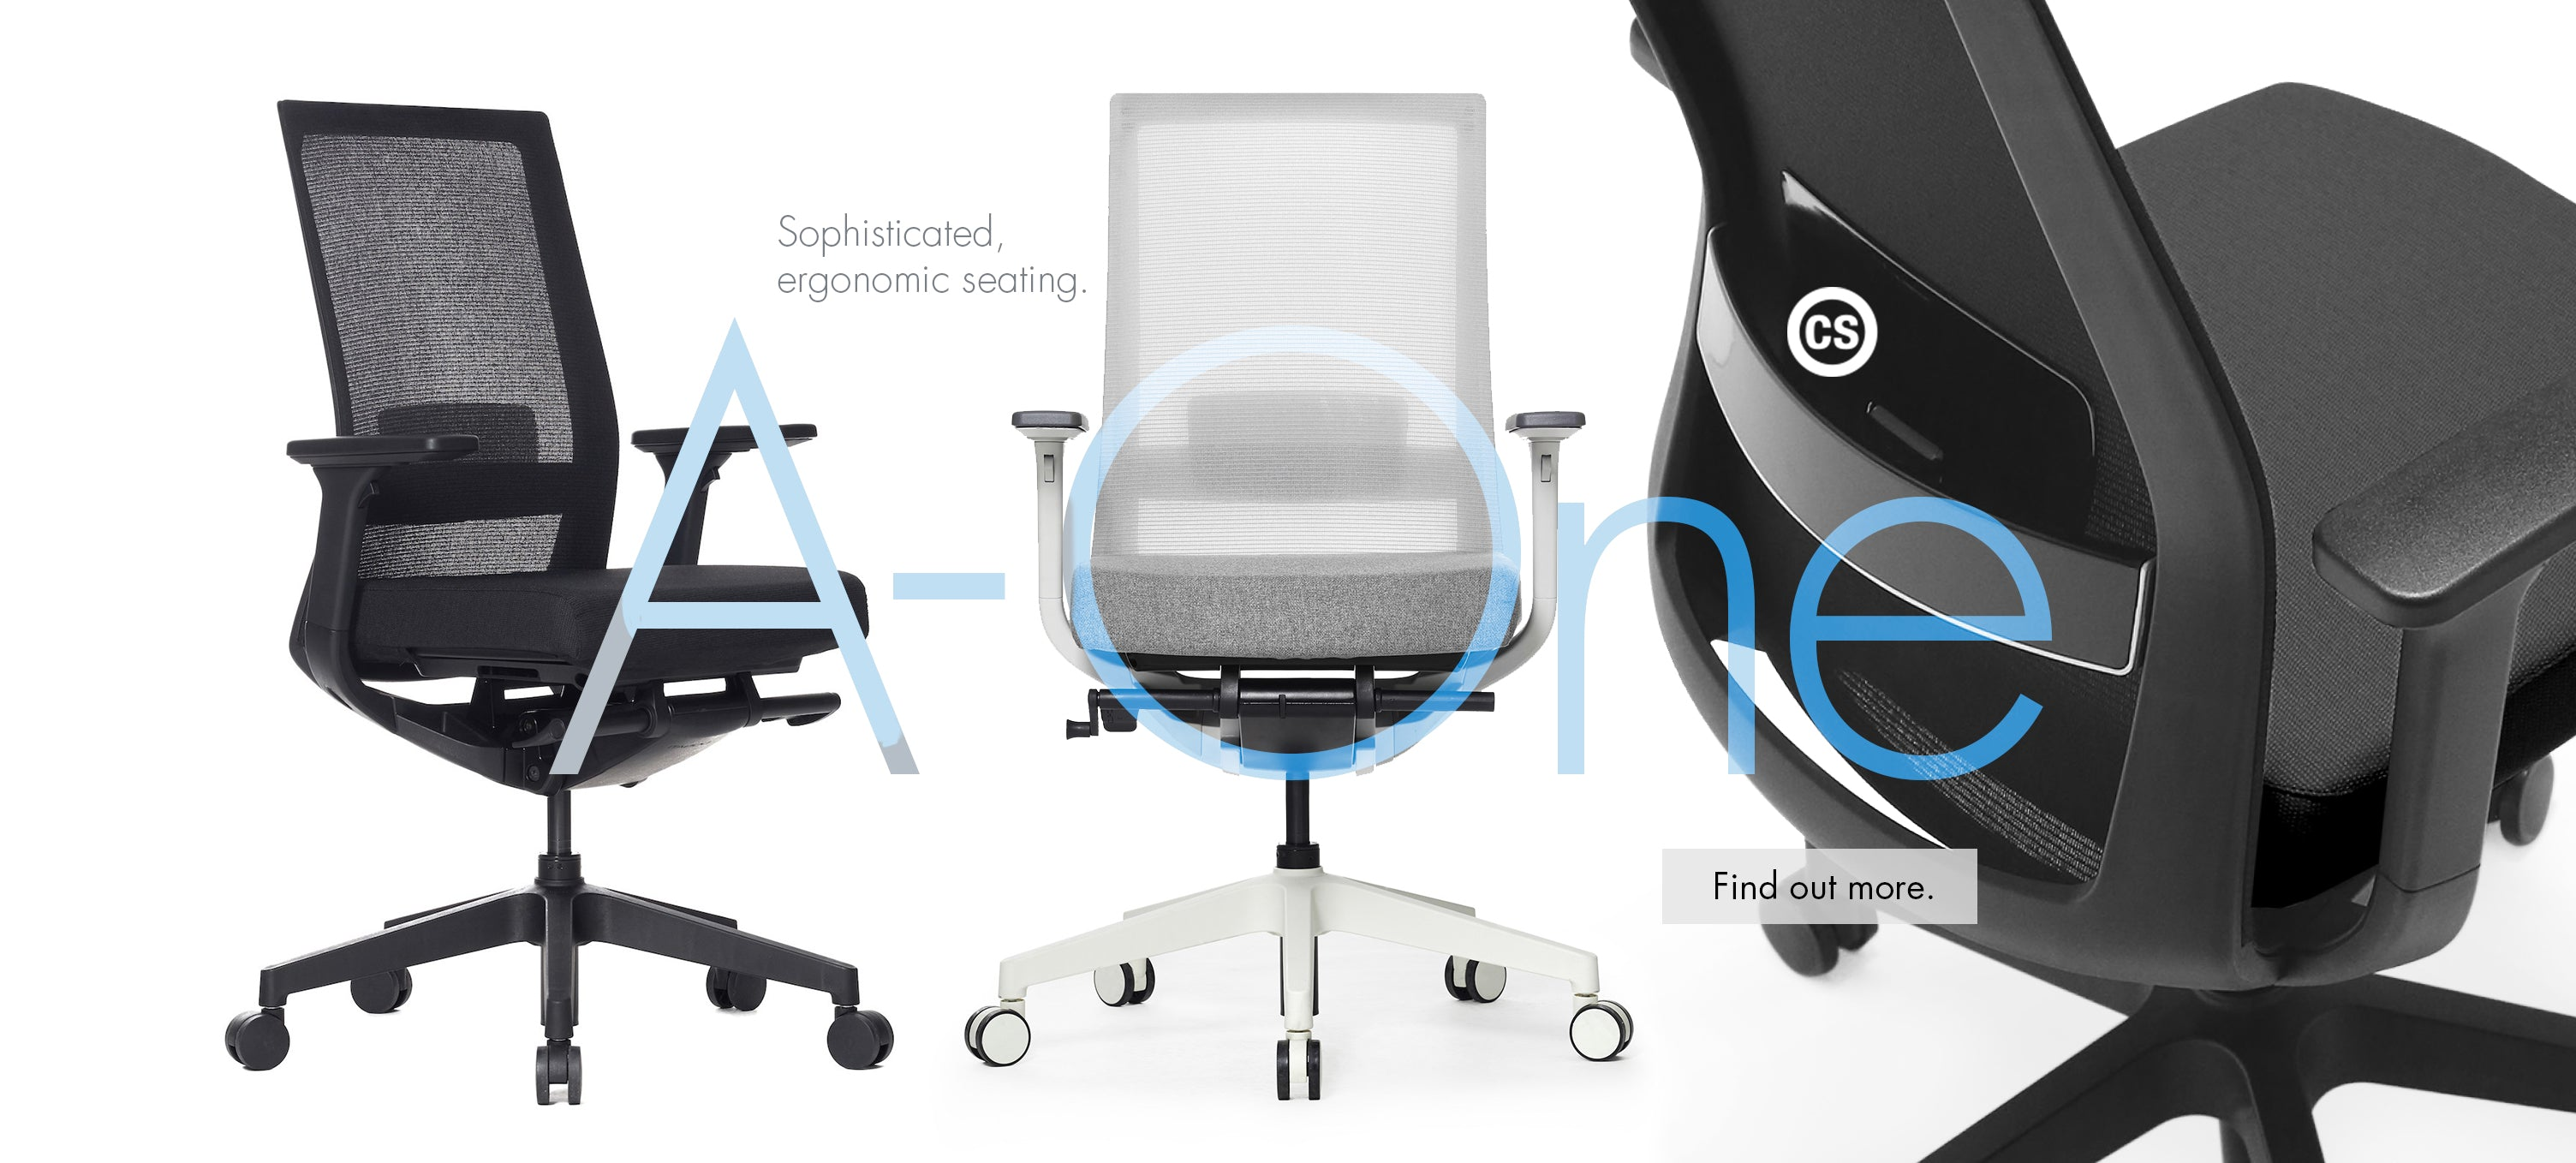 Chair Solutions A-One office chair